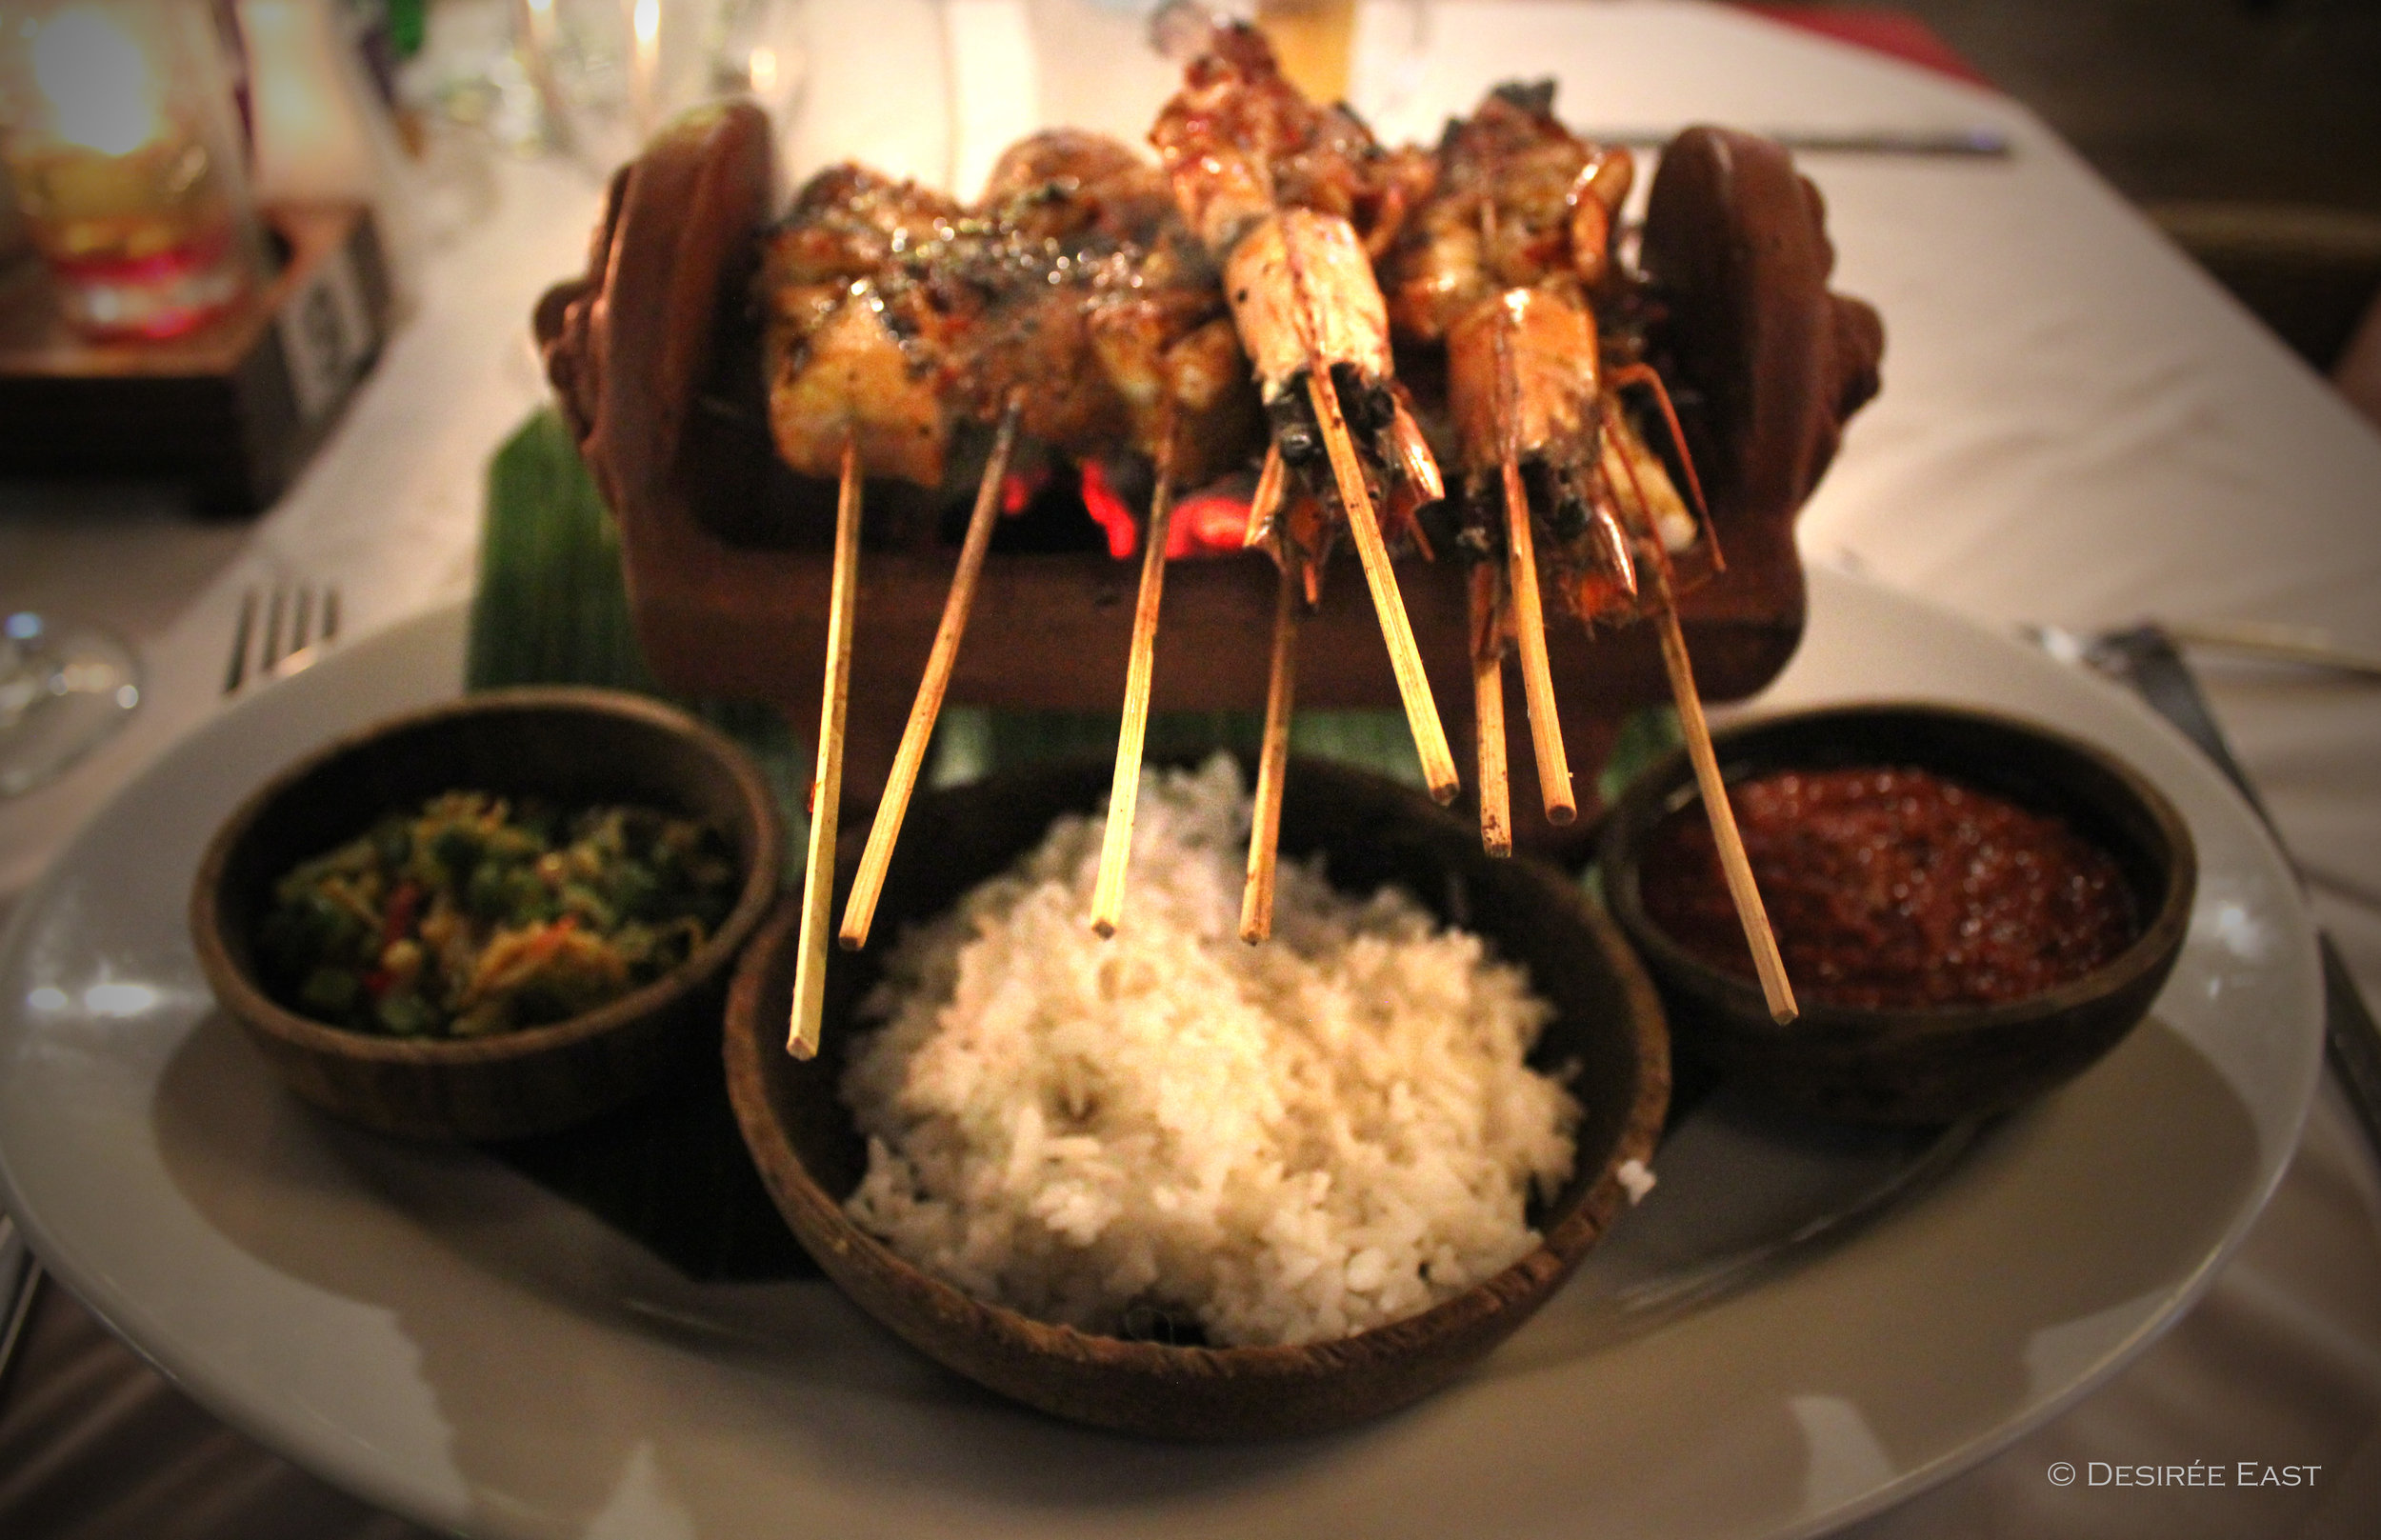 balinese seafood satay. bali, indonesia. photo by desiree east